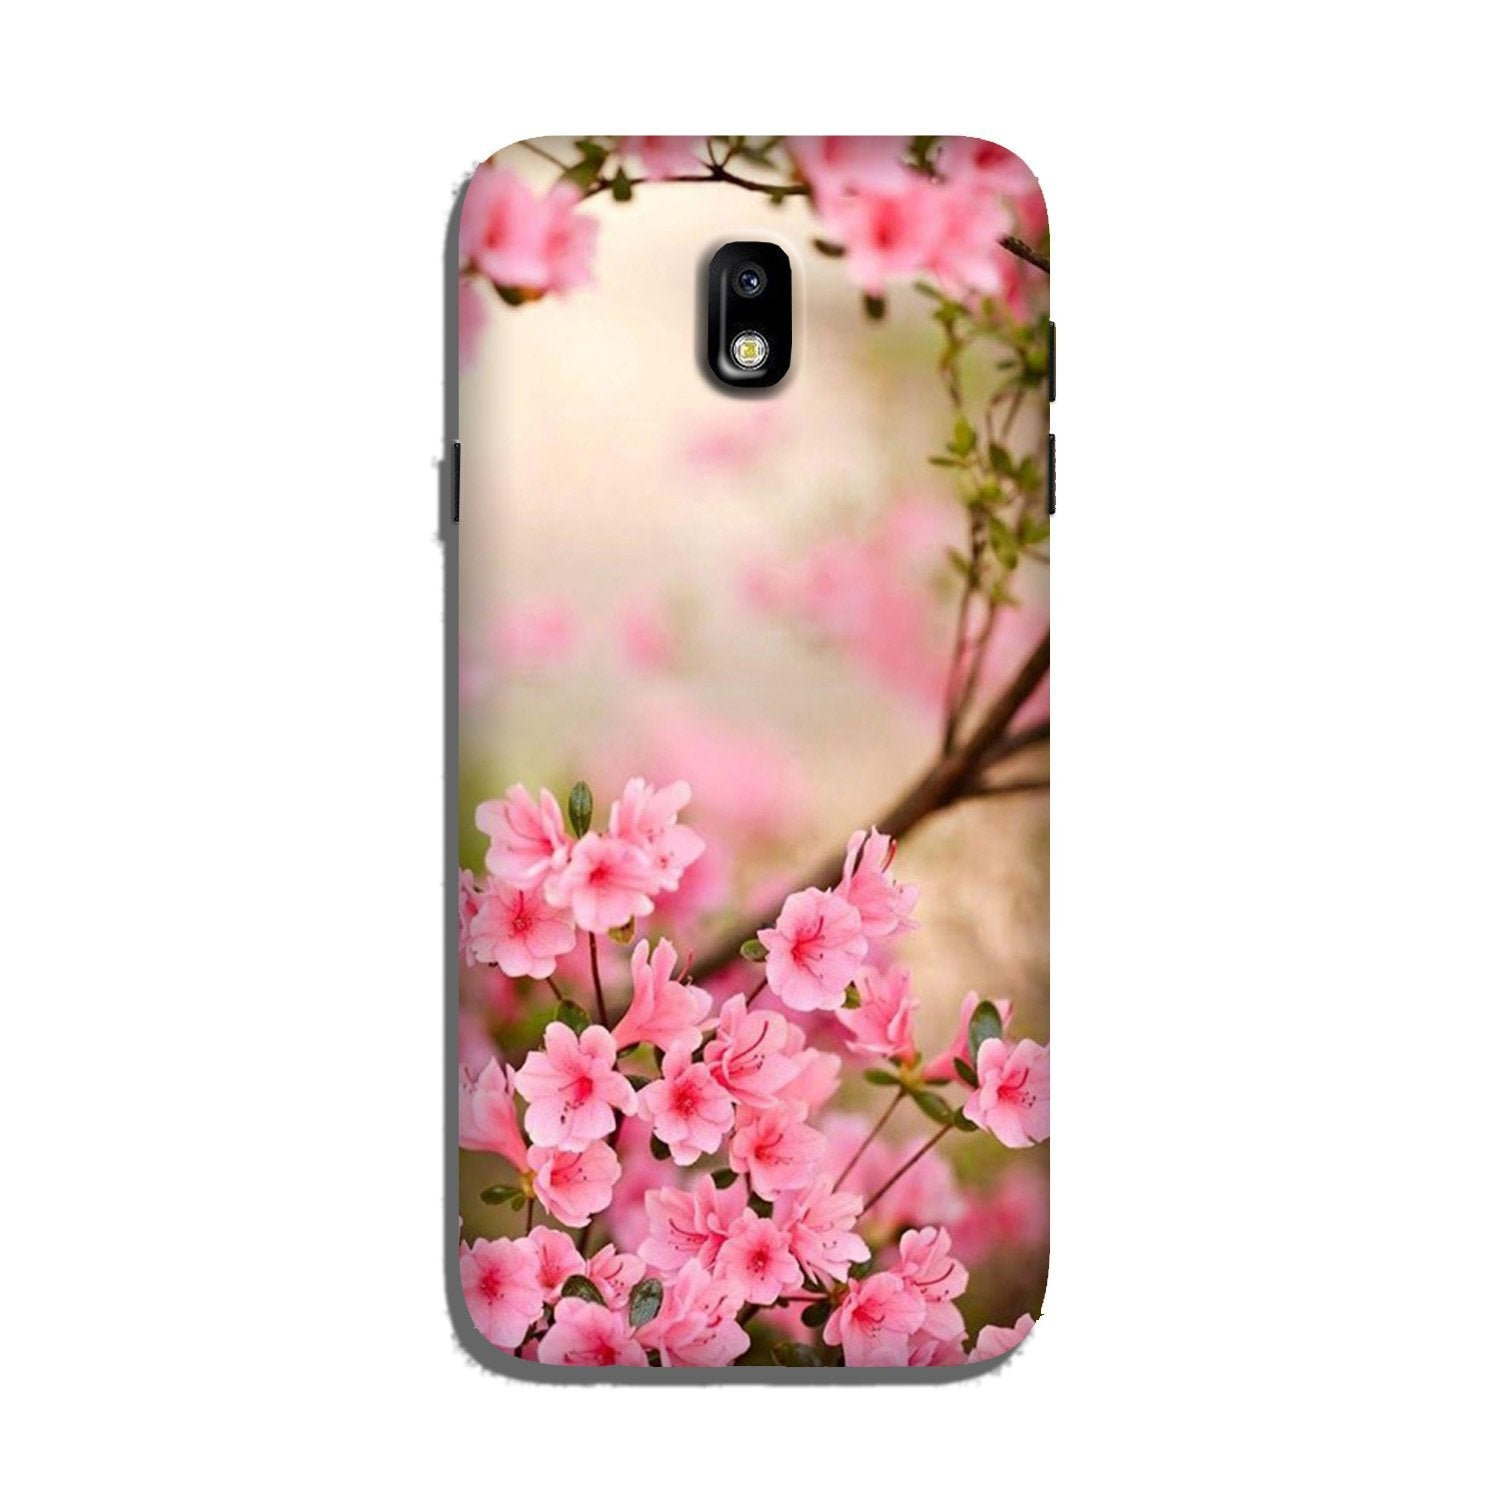 Pink flowers Case for Galaxy J3 Pro